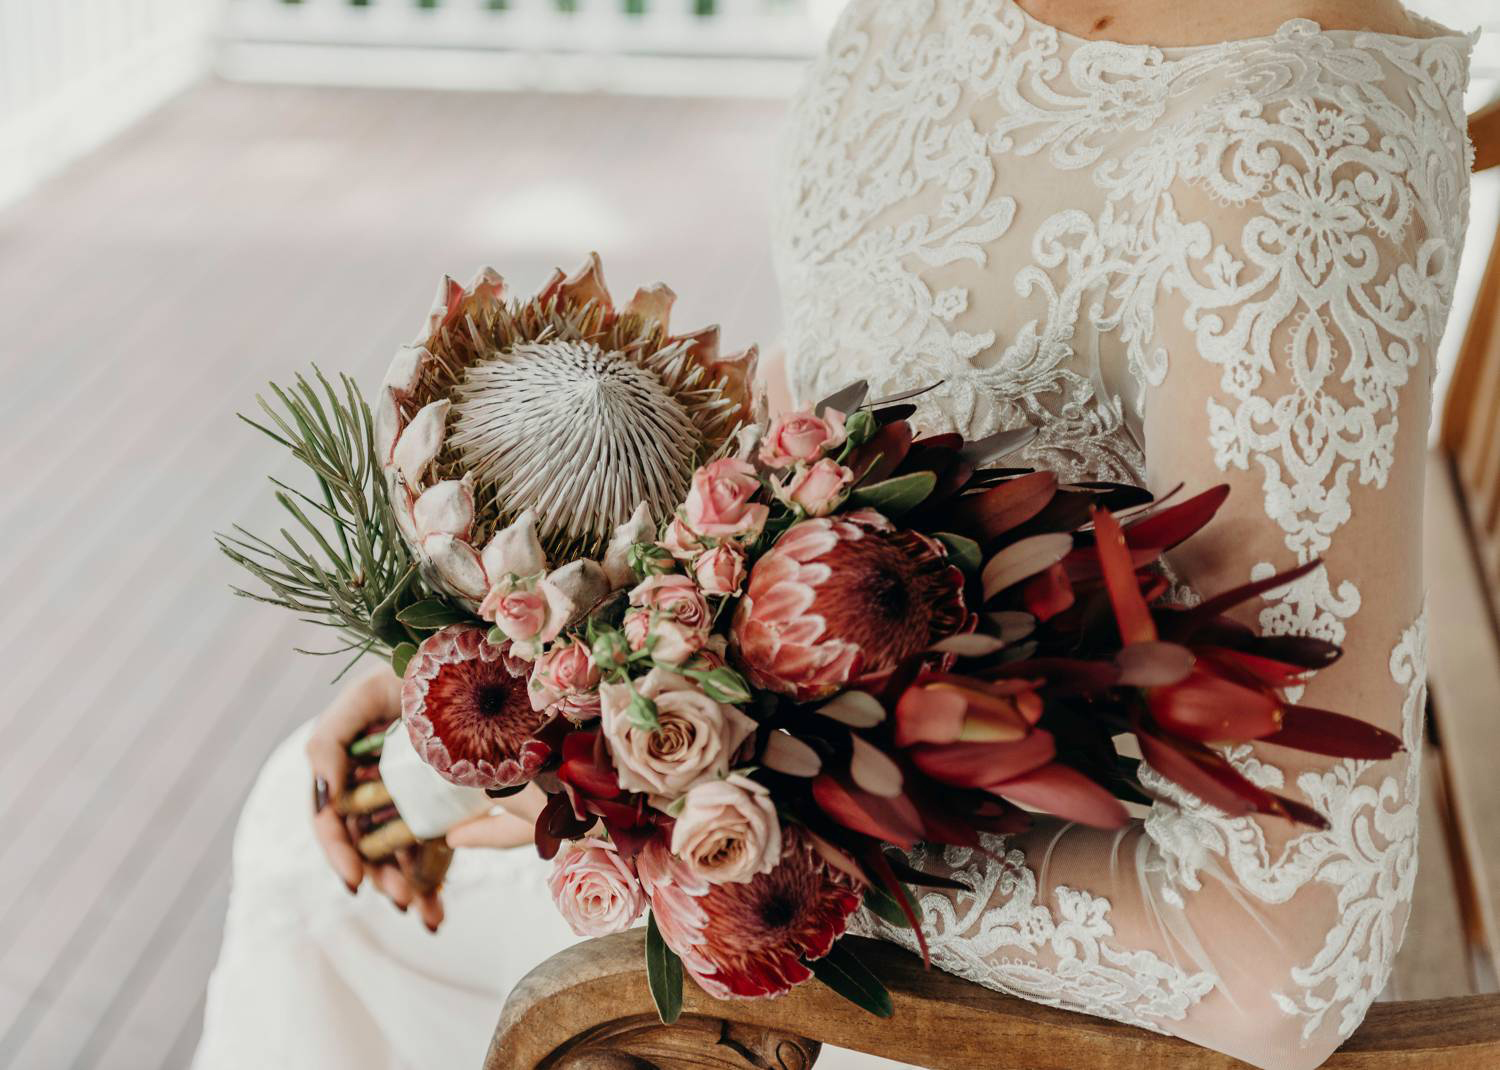 Wedding Bouquet with King Protea and Roses